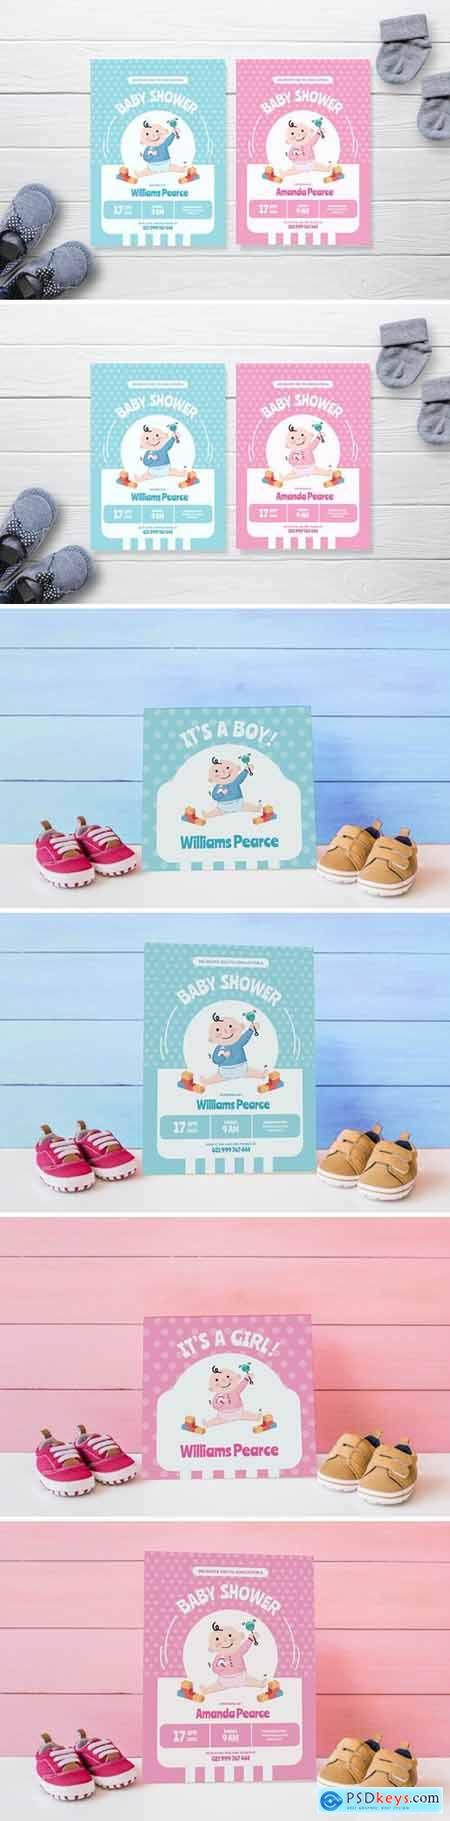 Simple Baby Playground - Baby Shower Invitation